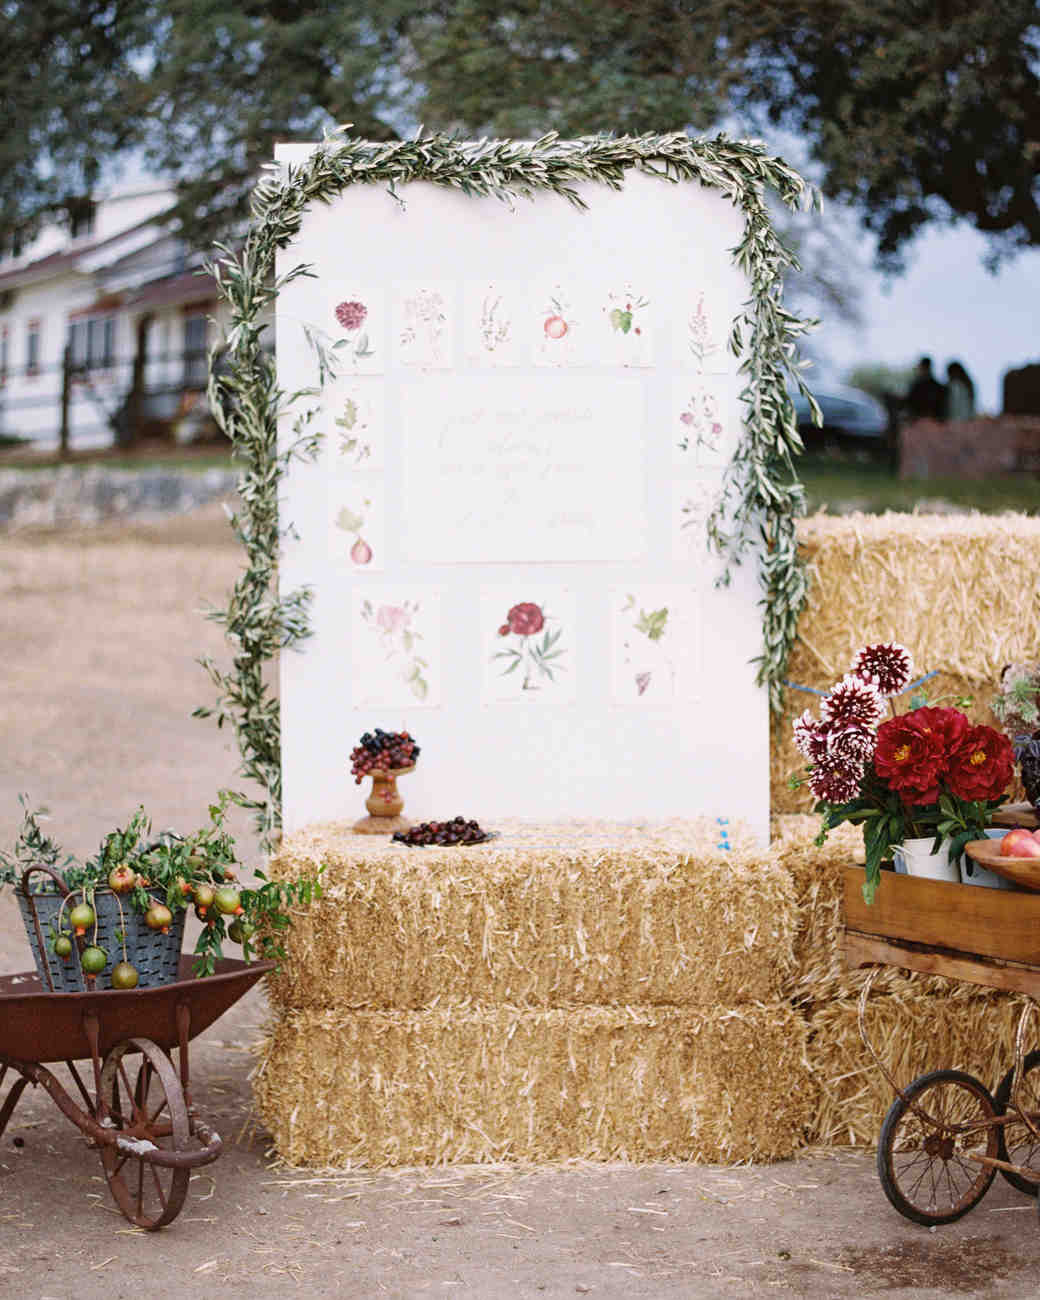 Fall Wedding Signage with Flowers and Hay Bales